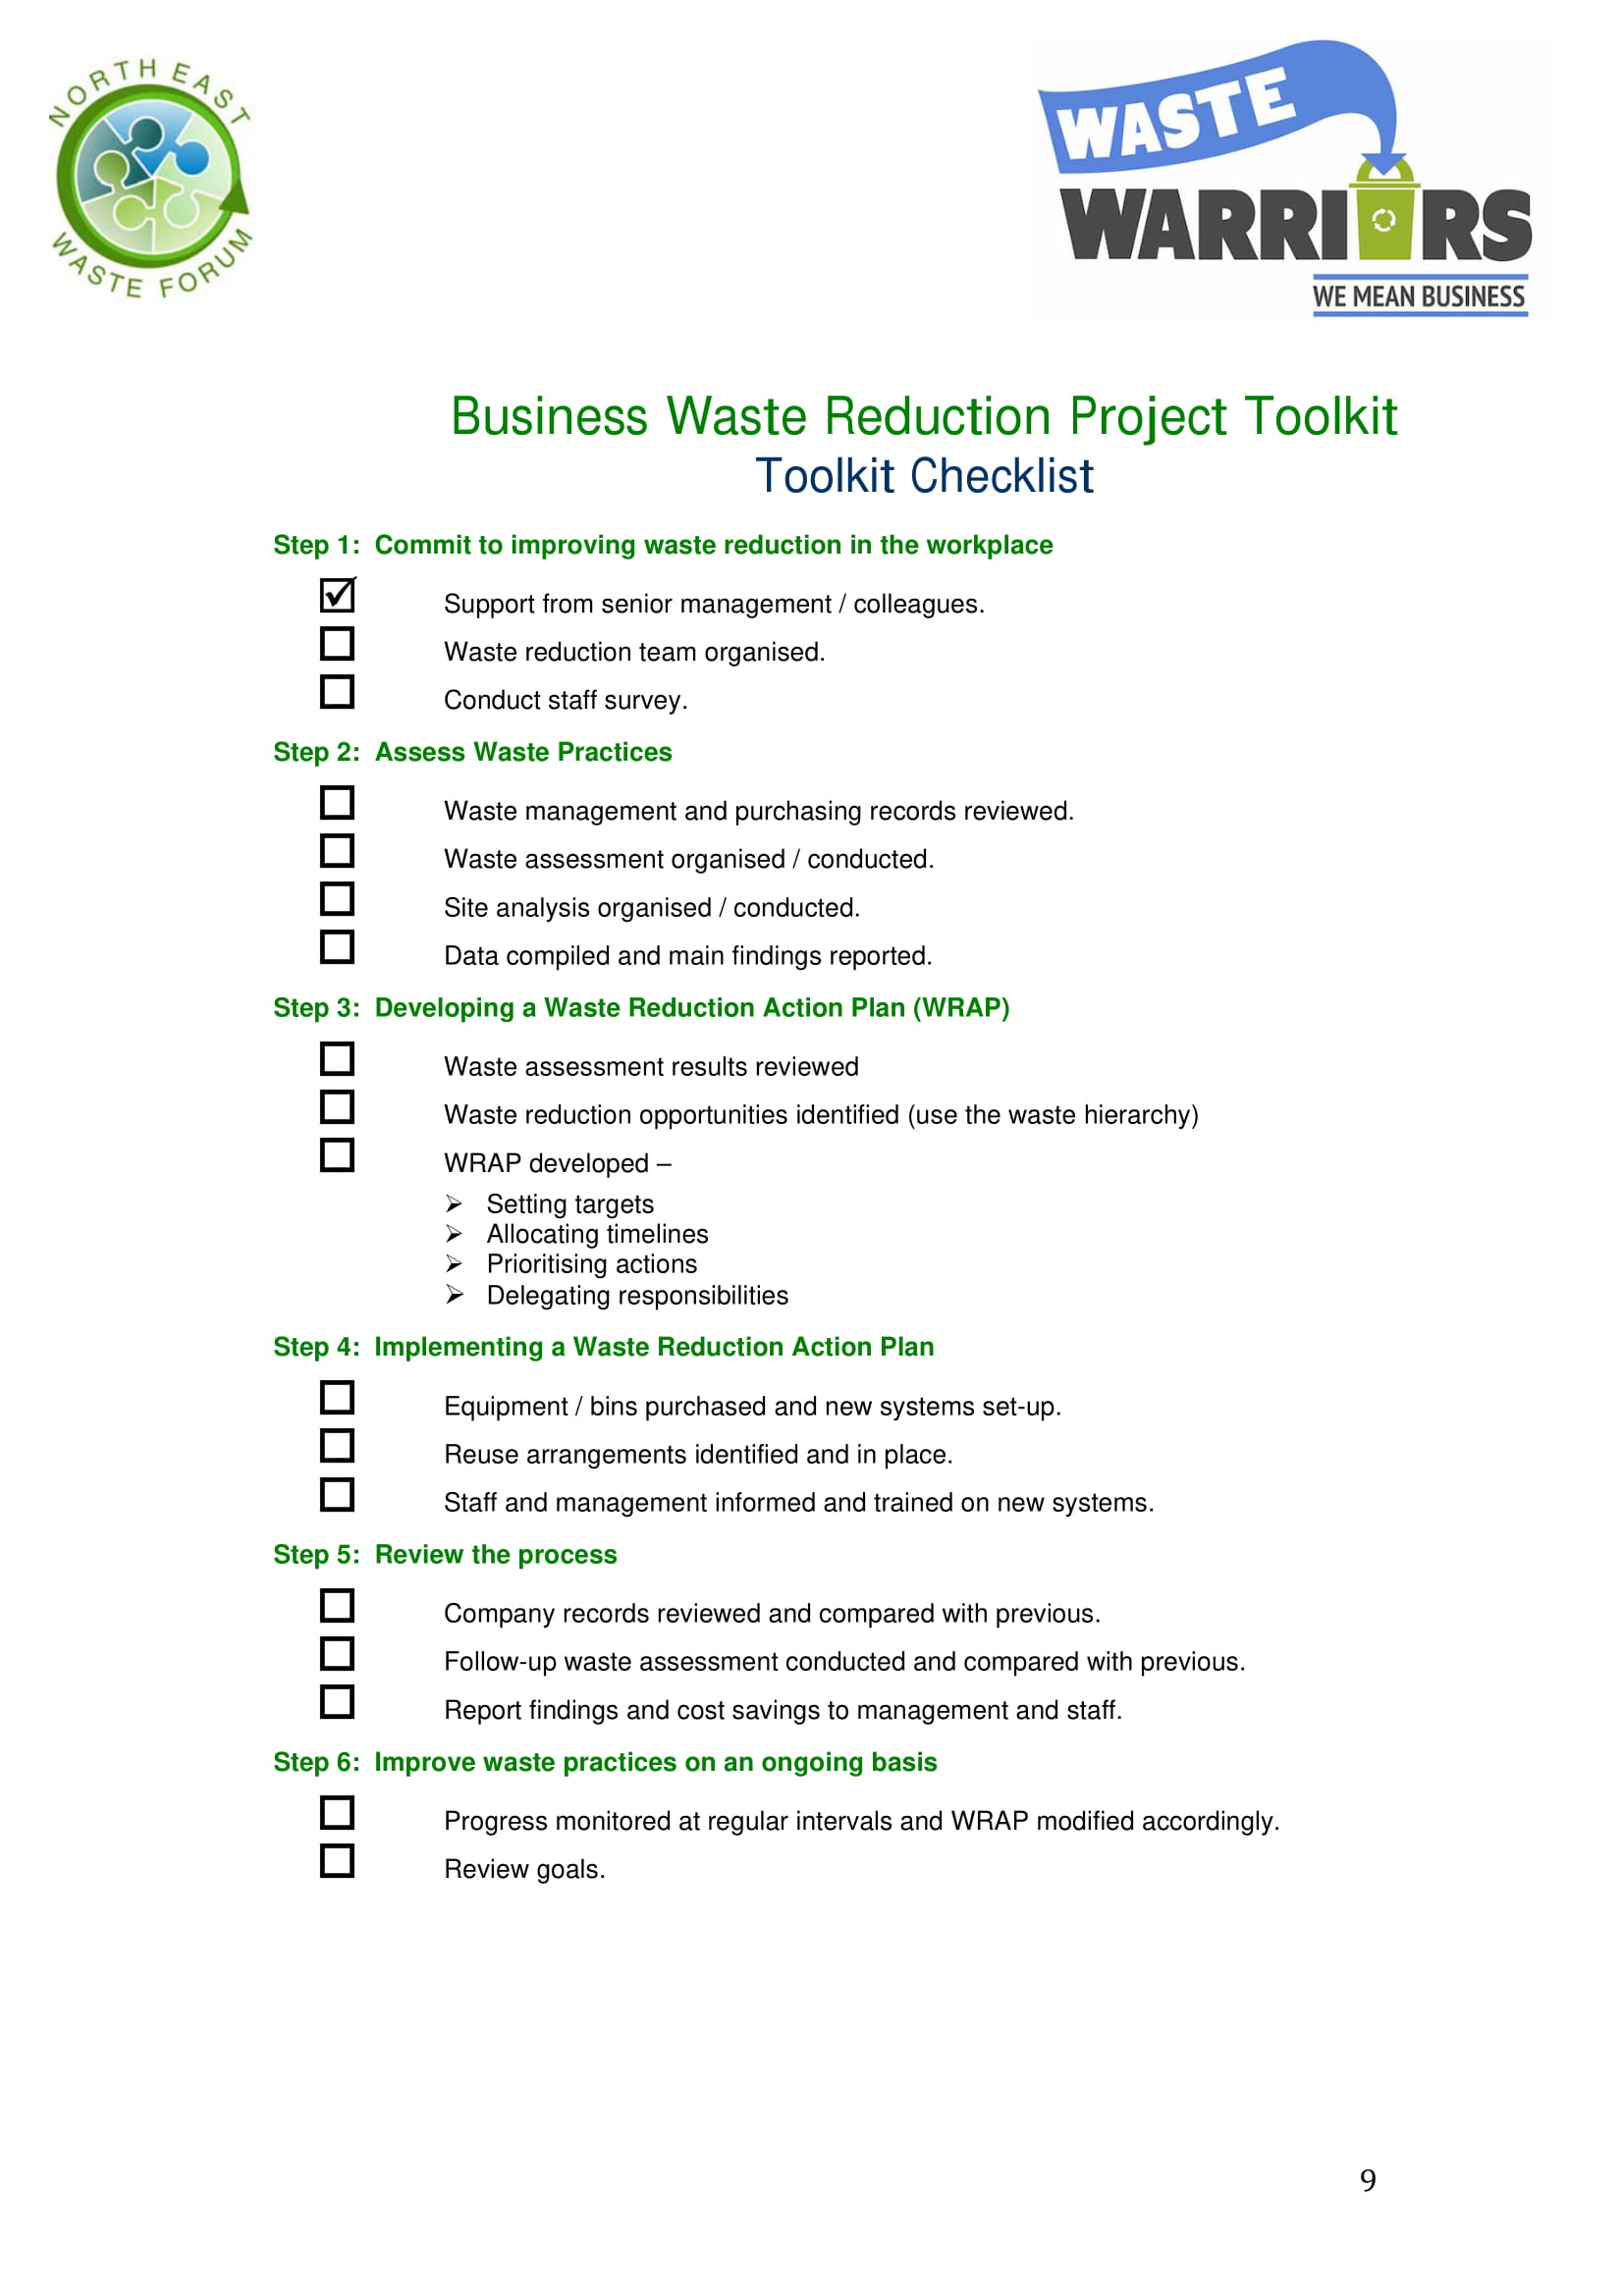 restaurant business waste reduction checklist form 09